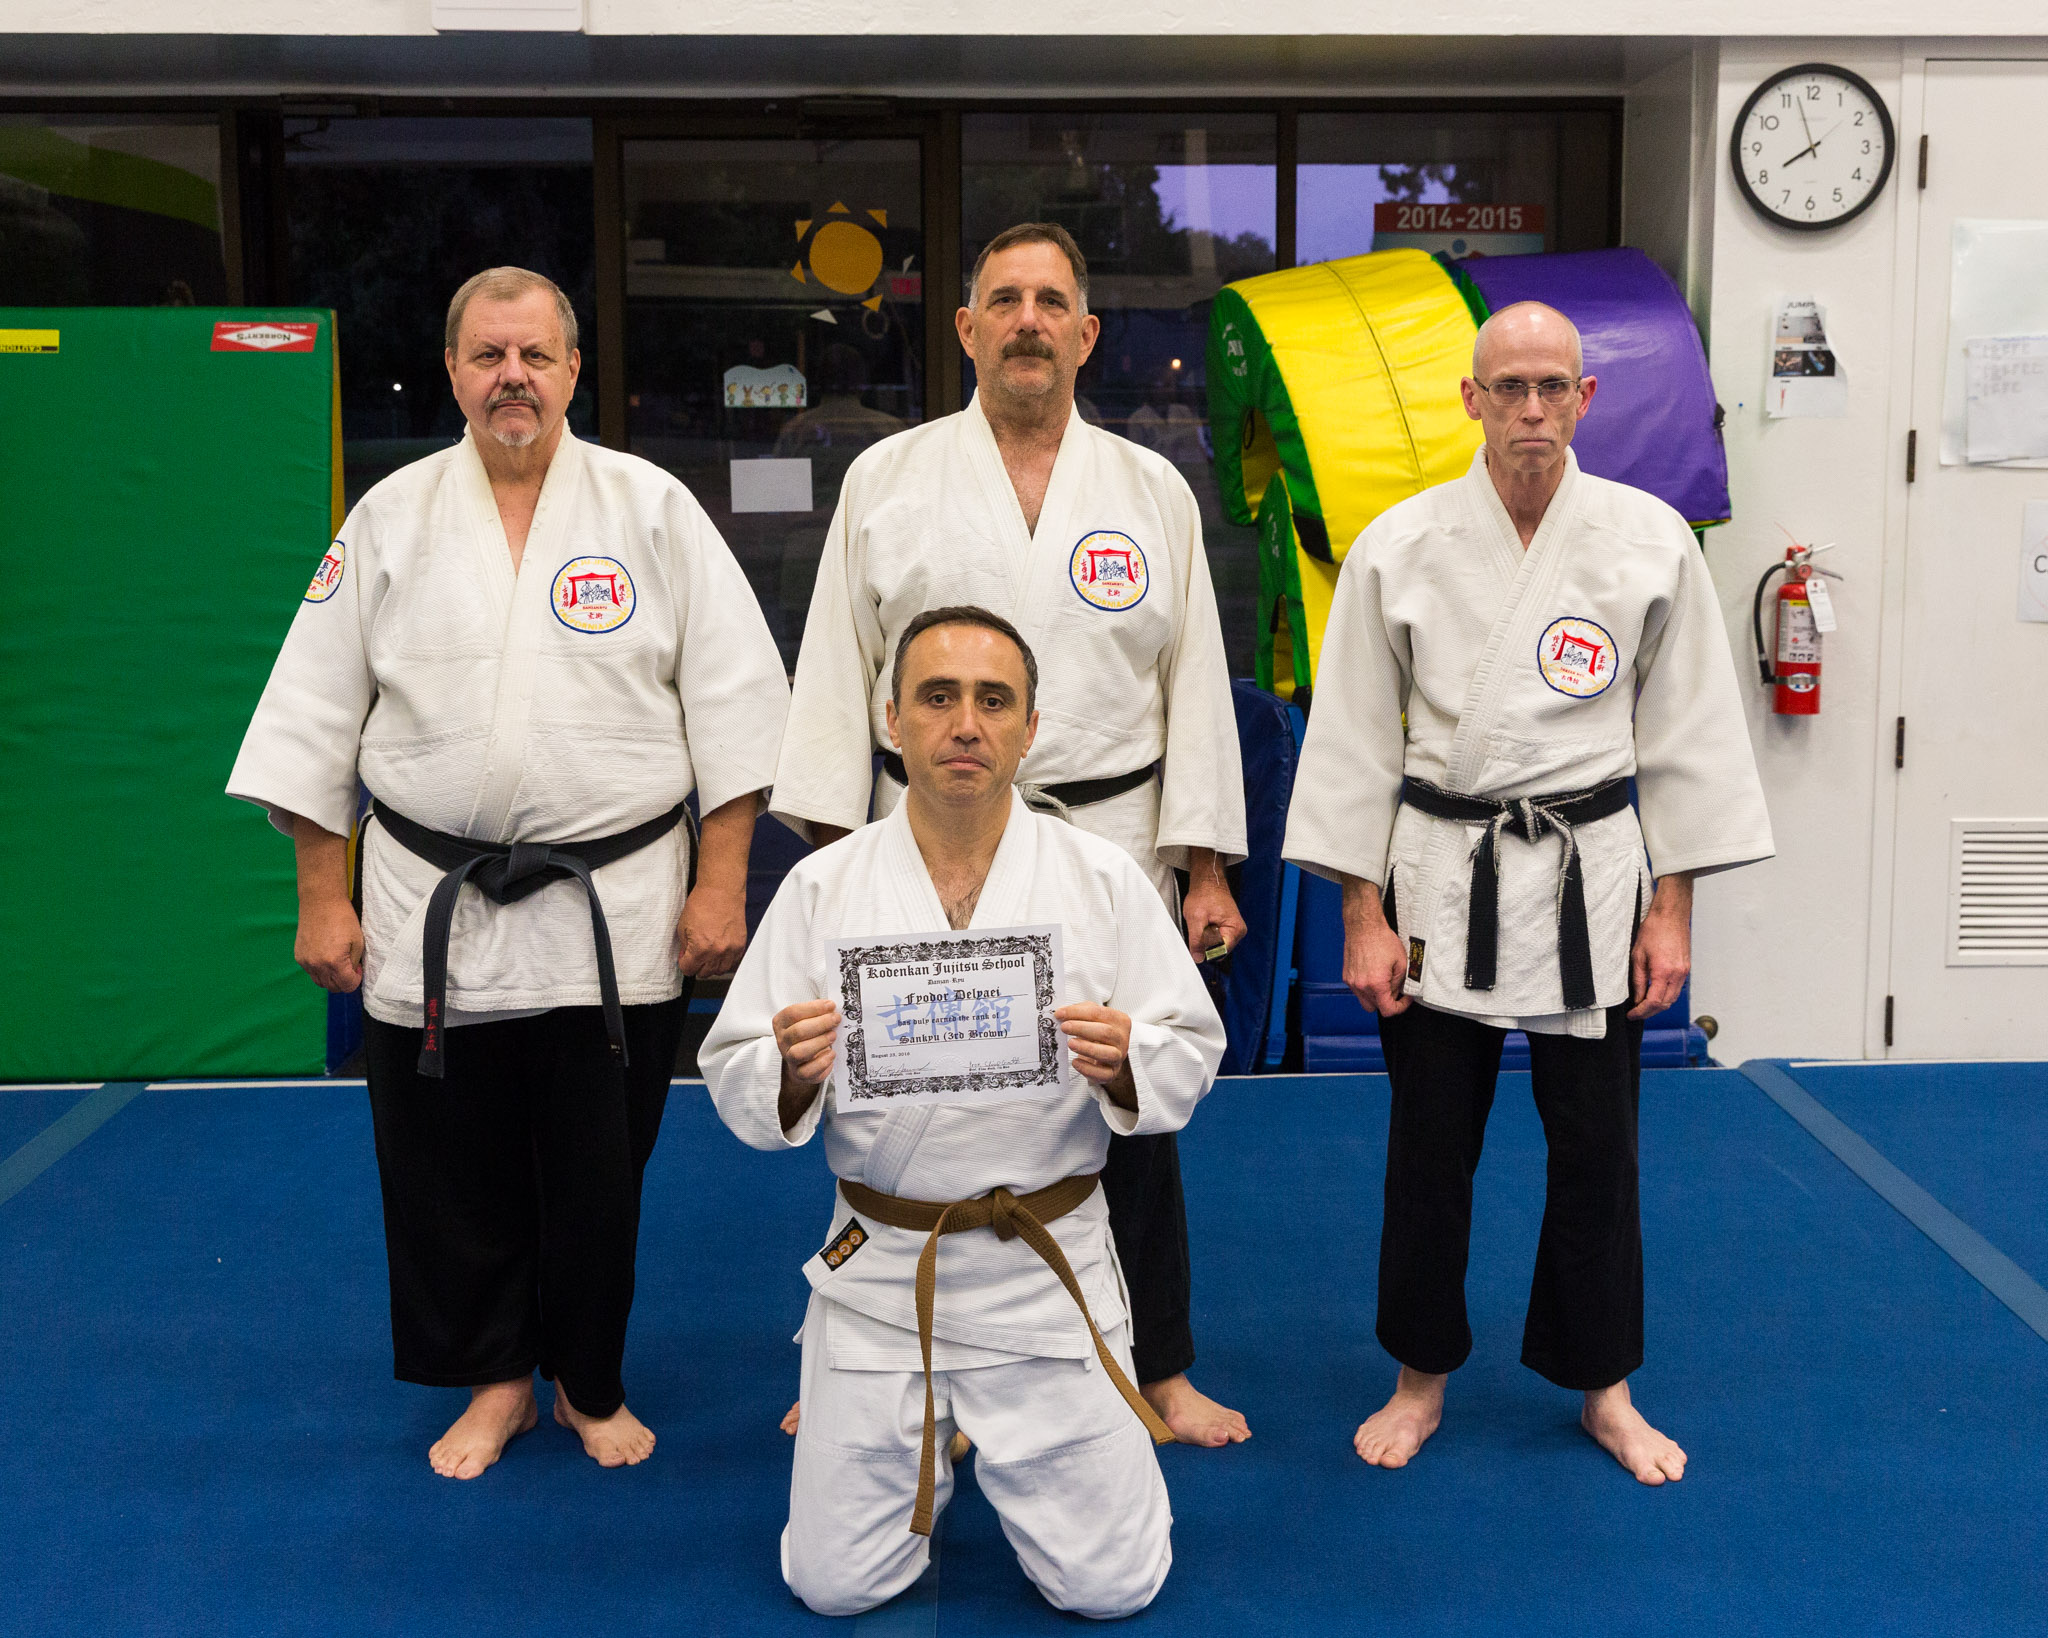 Fyodor Delyaei receives his sankyu (3rd degree brown belt) from Profs. Tony Janovich, Clive Guth, and George Arrington